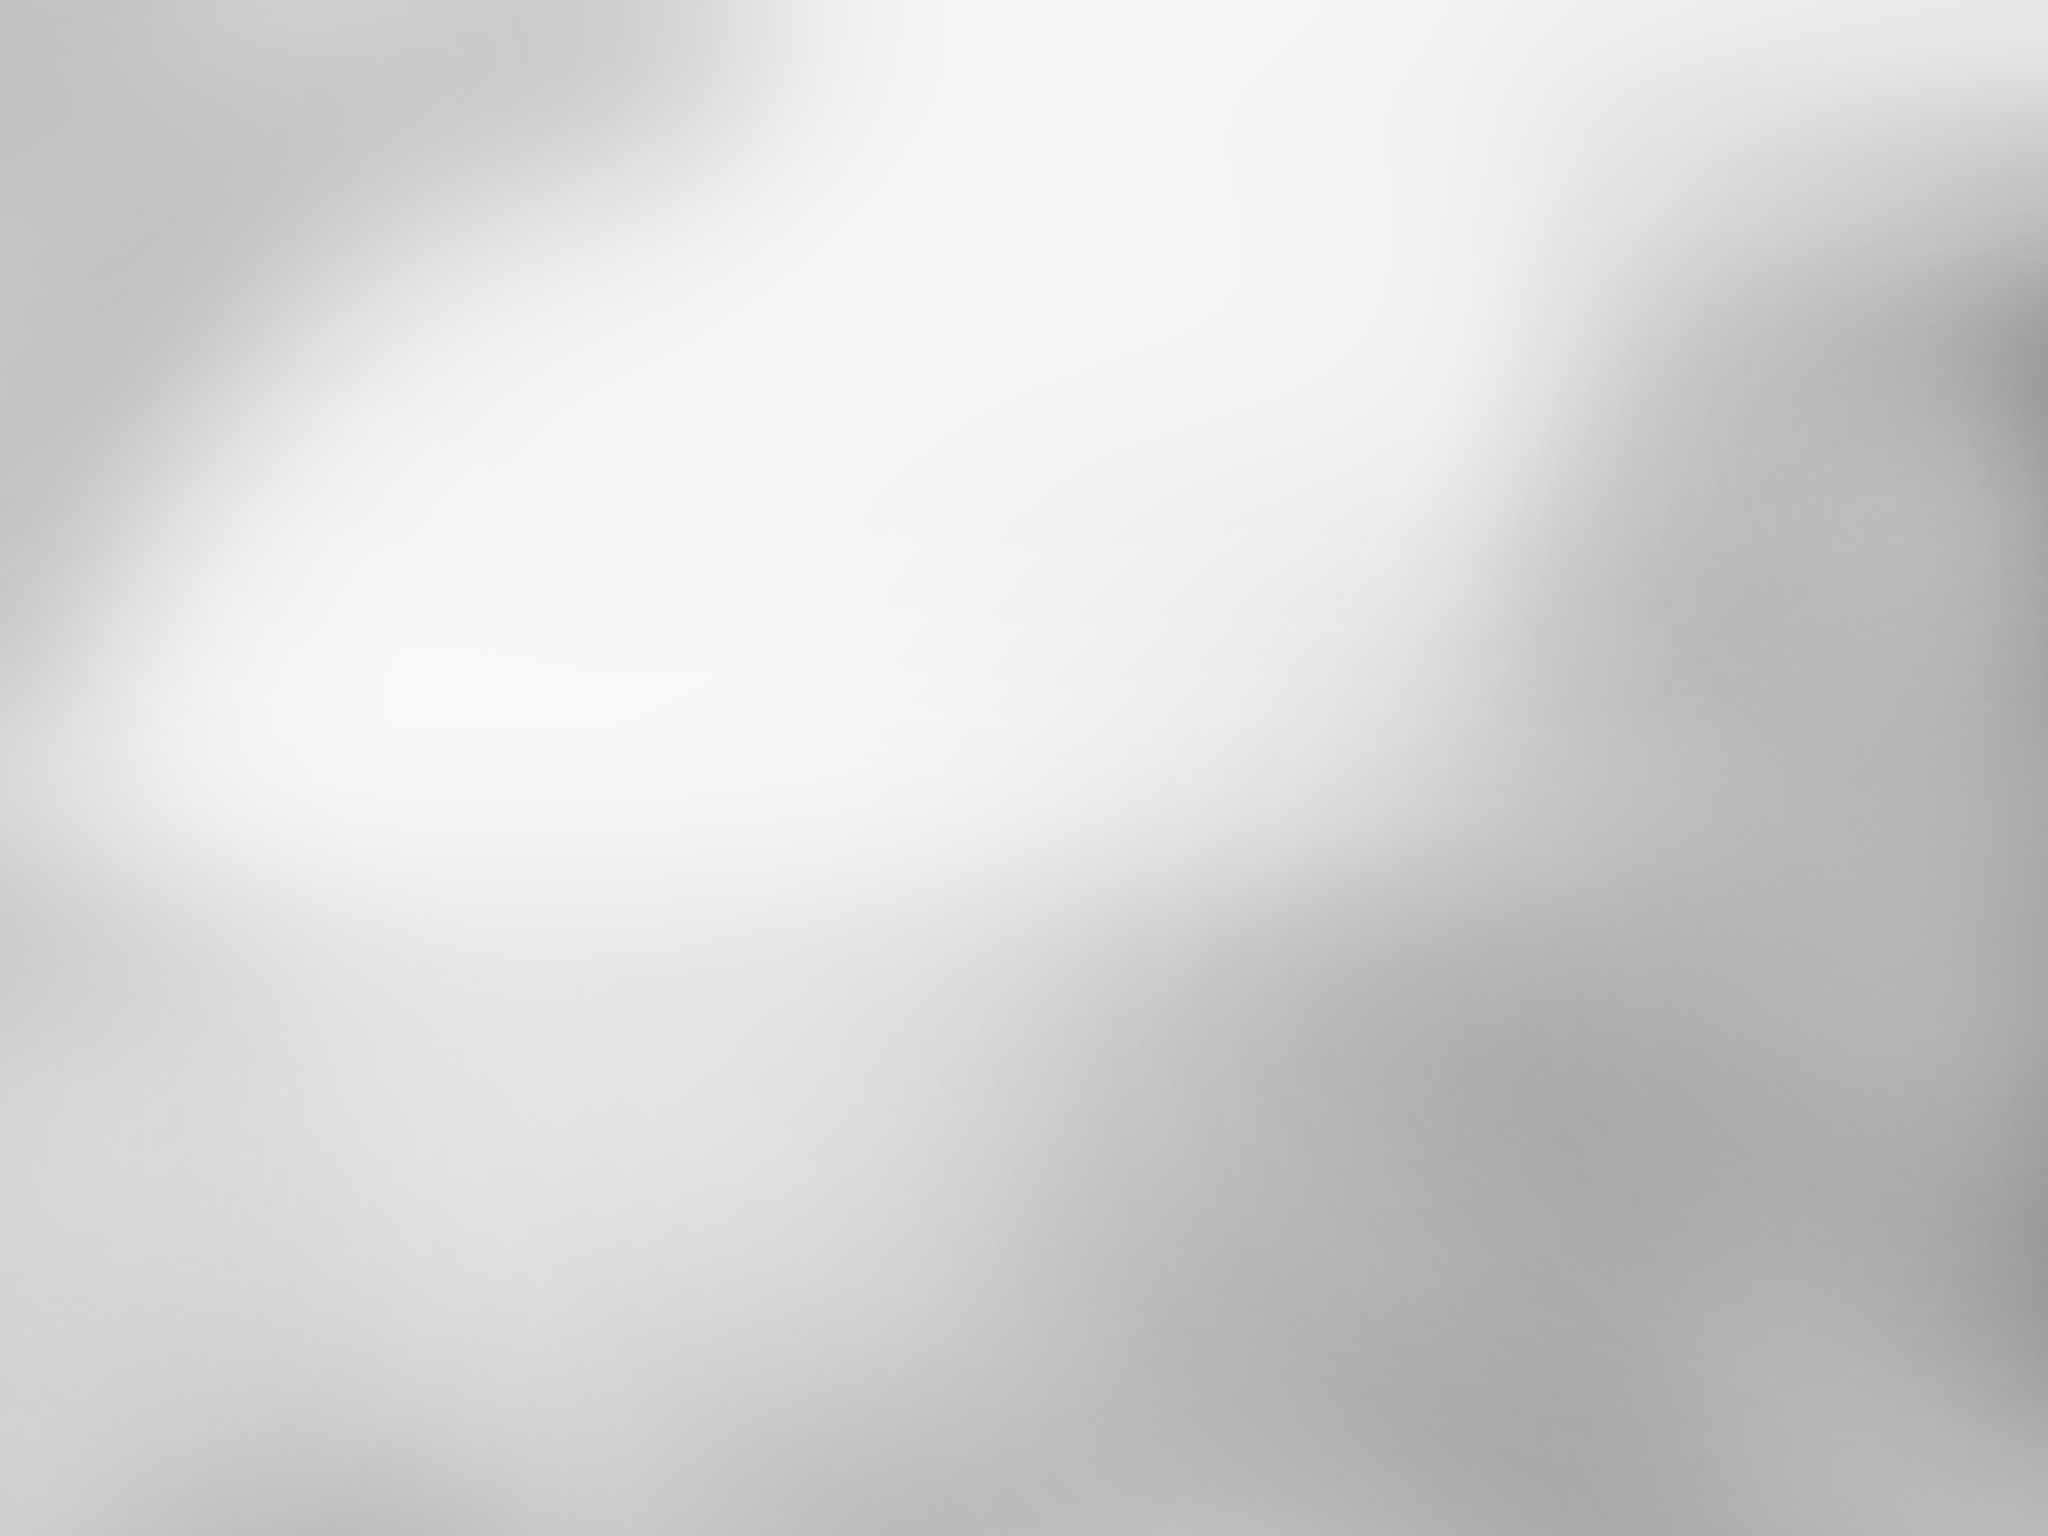 Silver Hd Wallpaper: Silver Background ·① Download Free Cool HD Wallpapers For